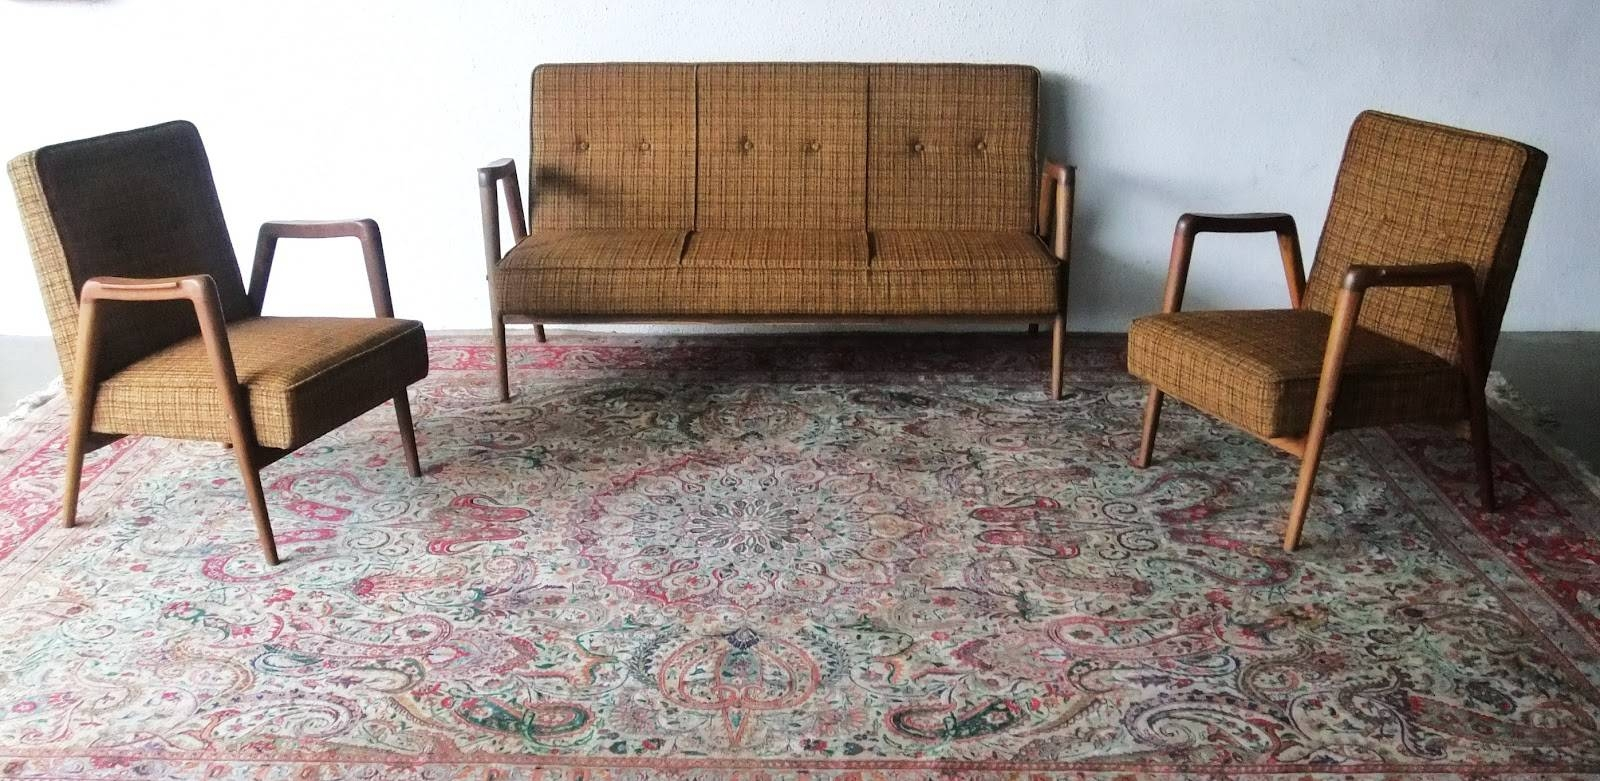 Vintage Furniture - Second Charm's Collection Of Sofas, Armchairs with regard to Retro Sofas and Chairs (Image 15 of 15)